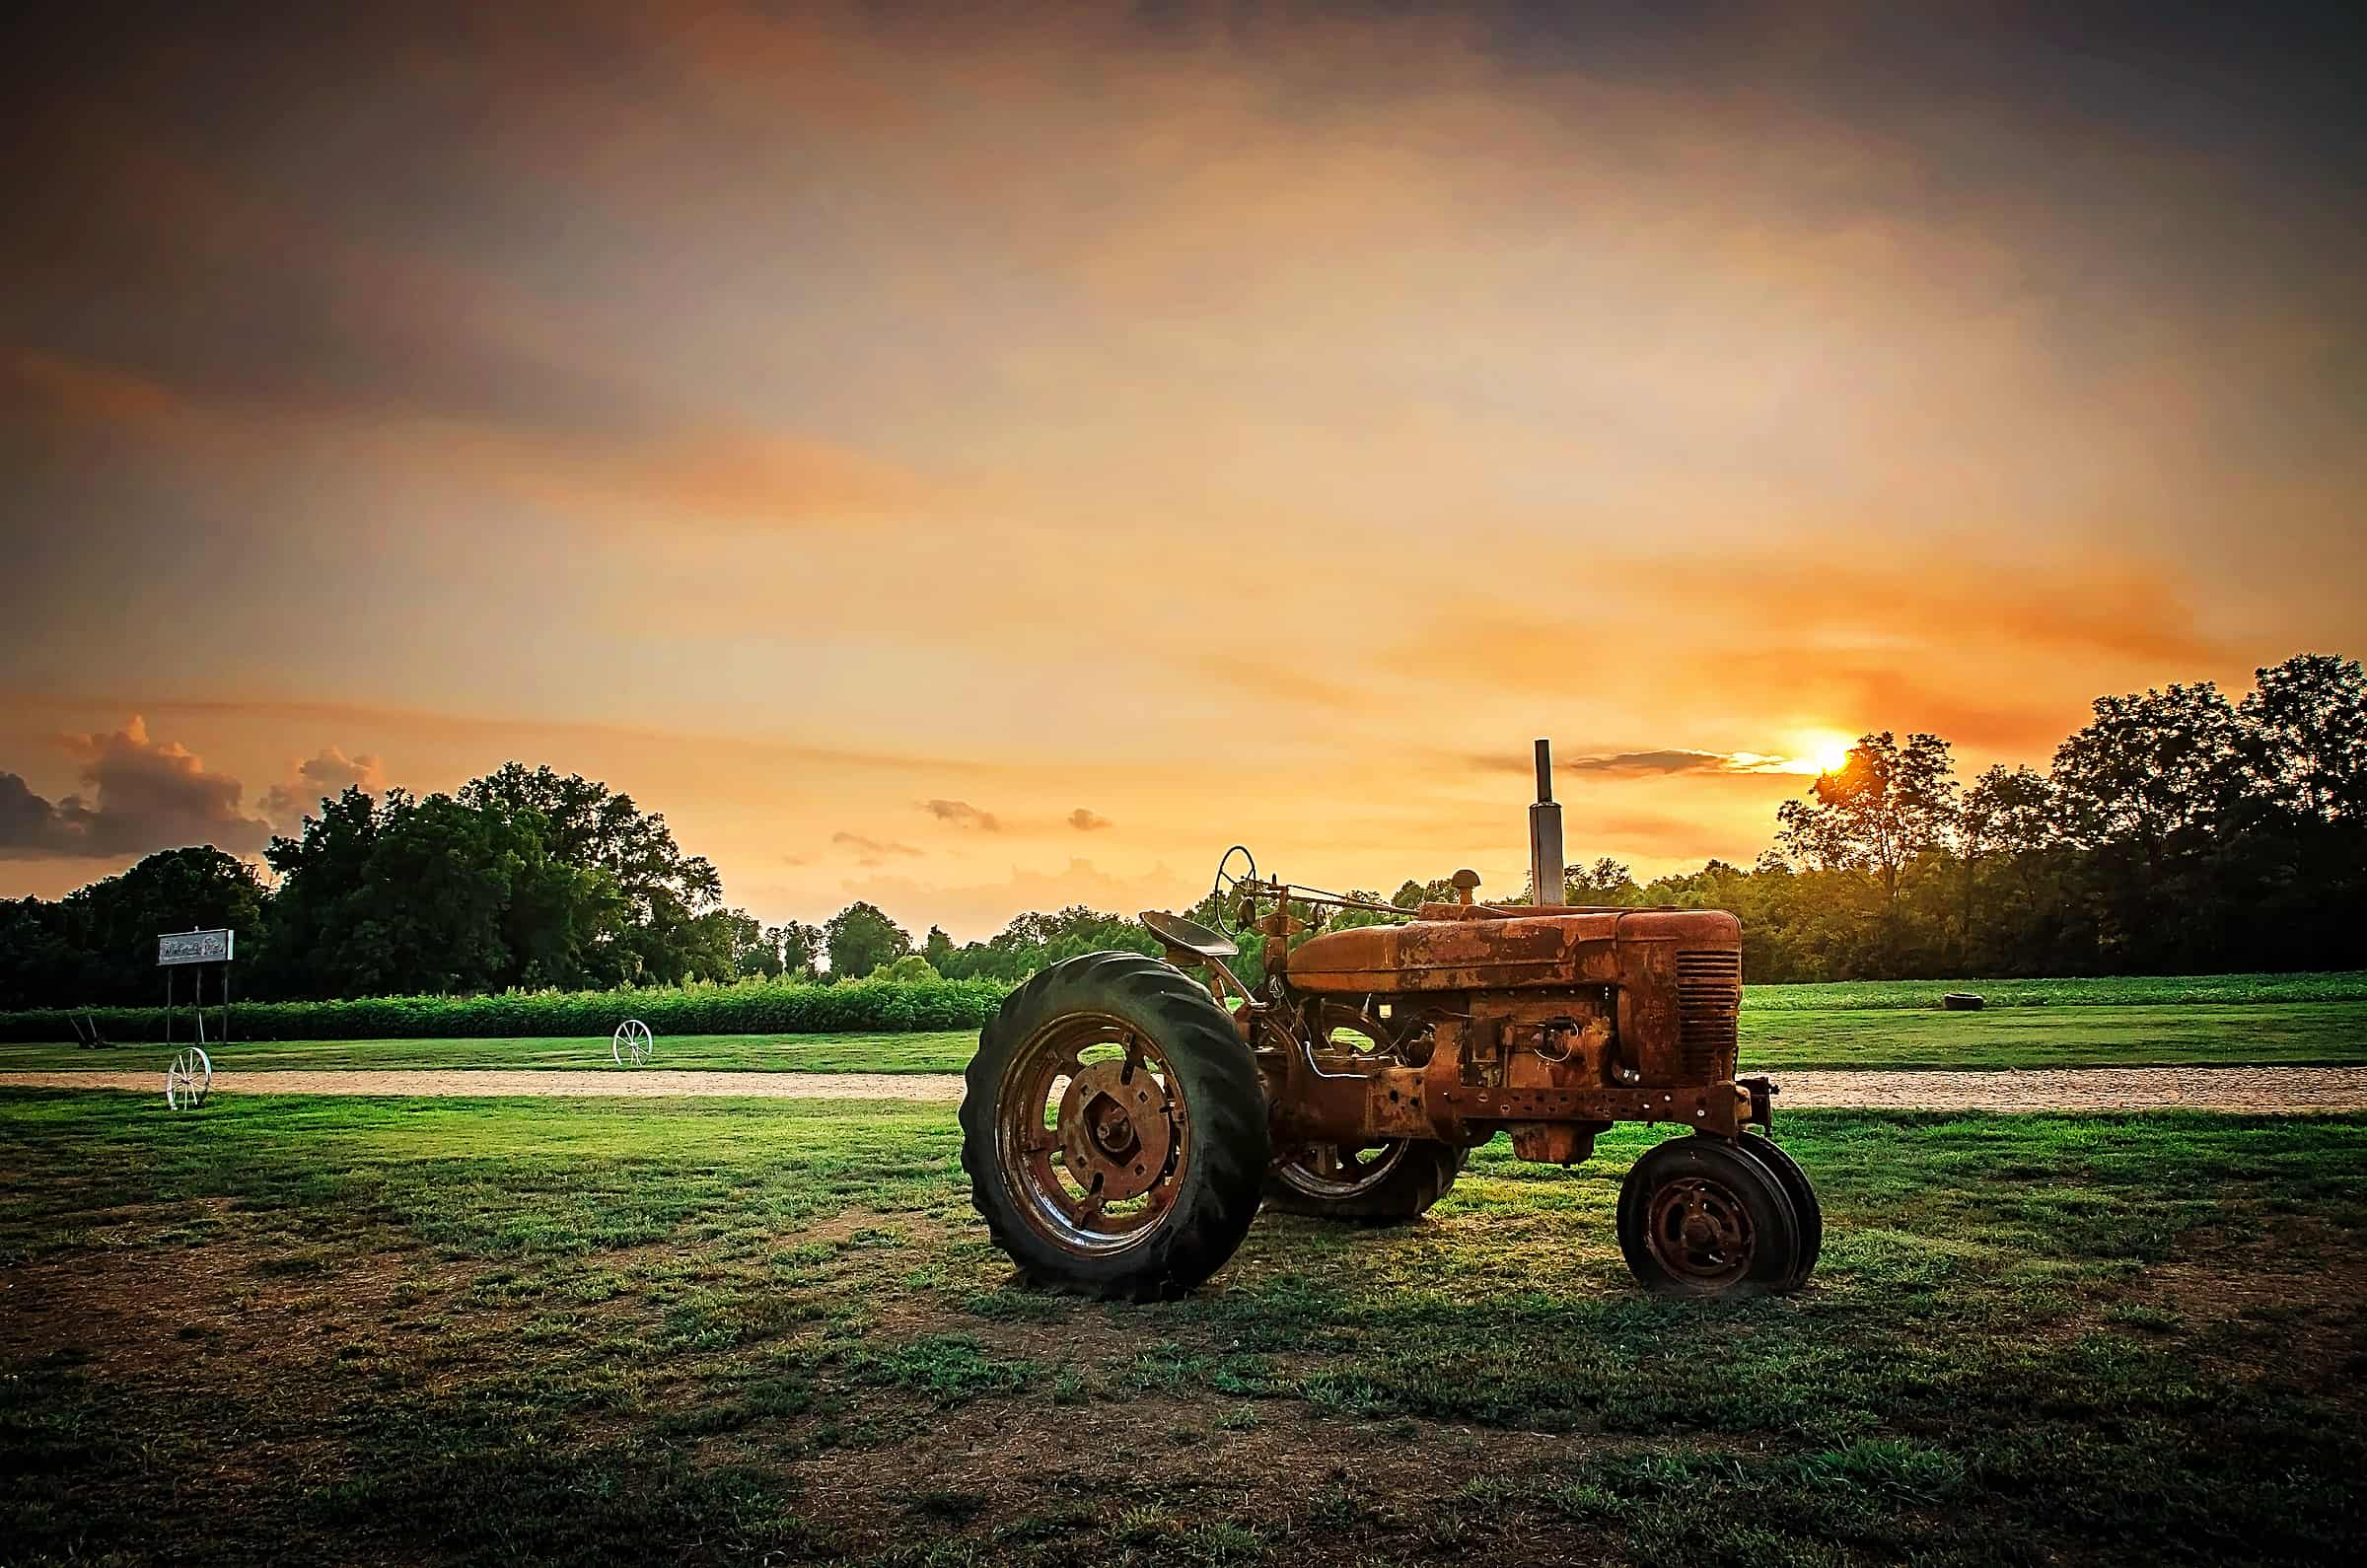 Sunset and antique tractor at Tallahatchee Flats in Greenwood Mississippi